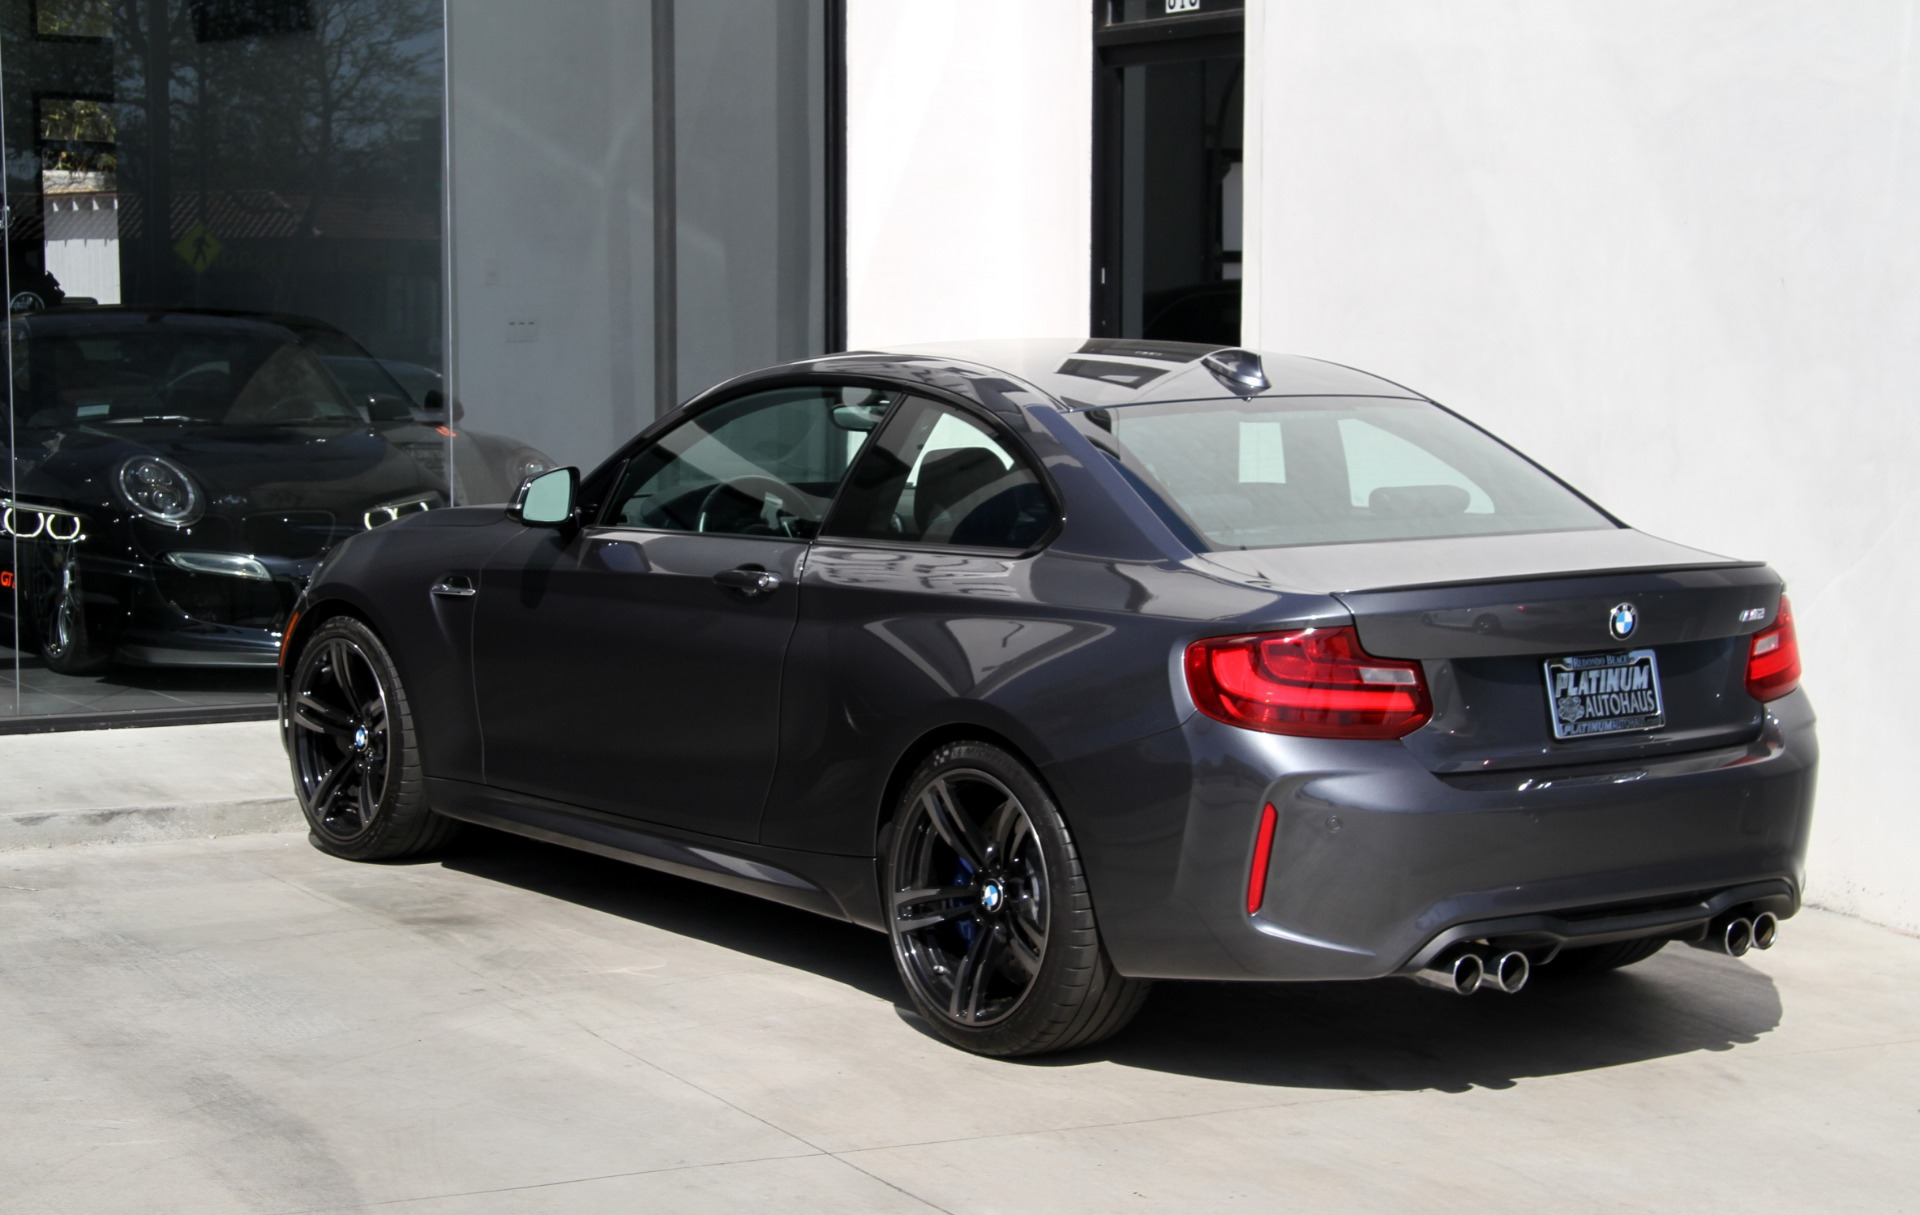 2017 bmw m2 stock 6159 for sale near redondo beach ca ca bmw dealer. Black Bedroom Furniture Sets. Home Design Ideas